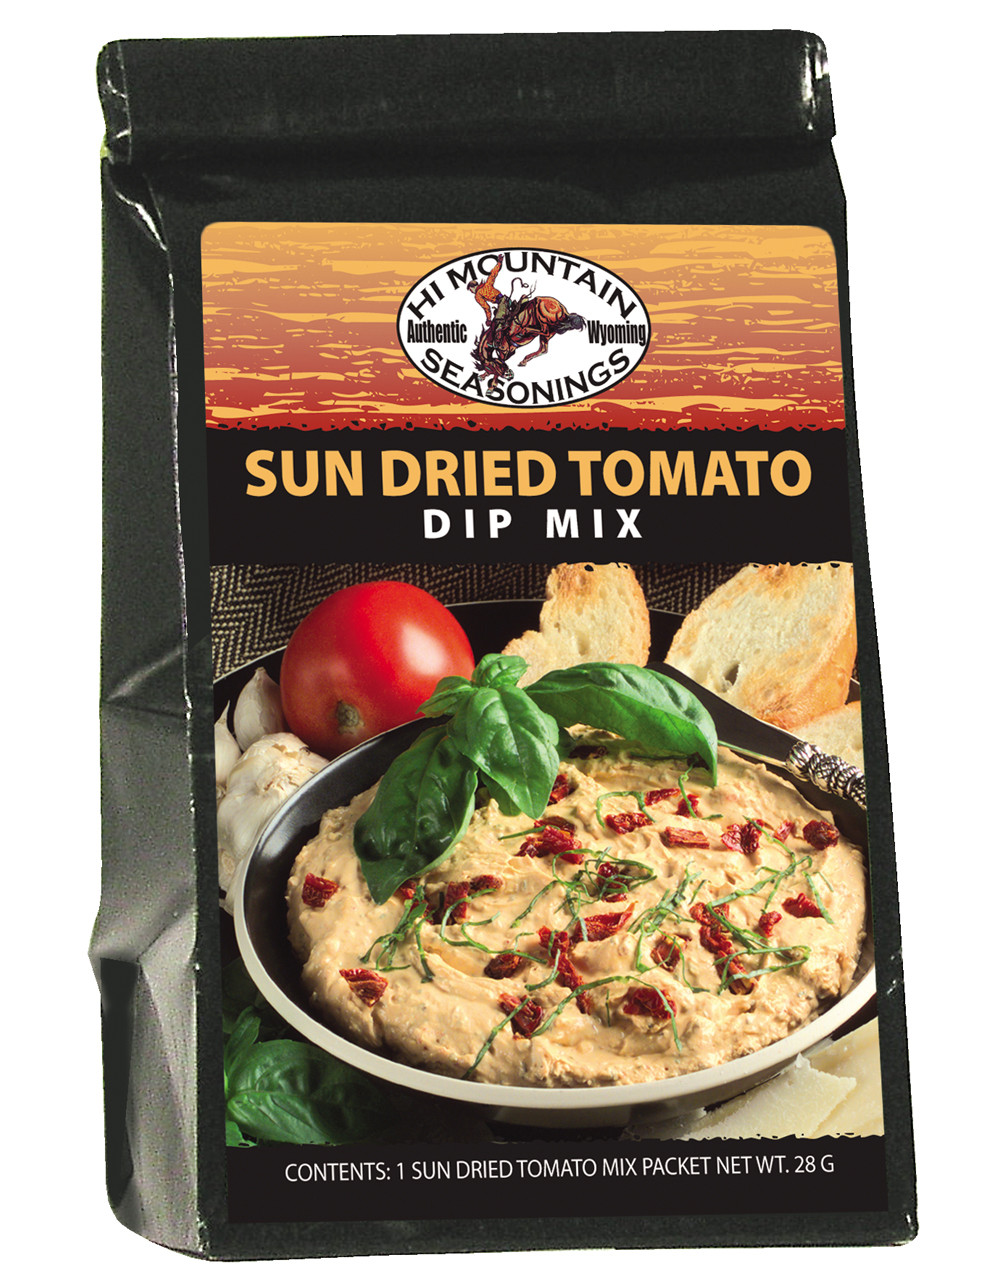 Sun Dried Tomato Dip Mix